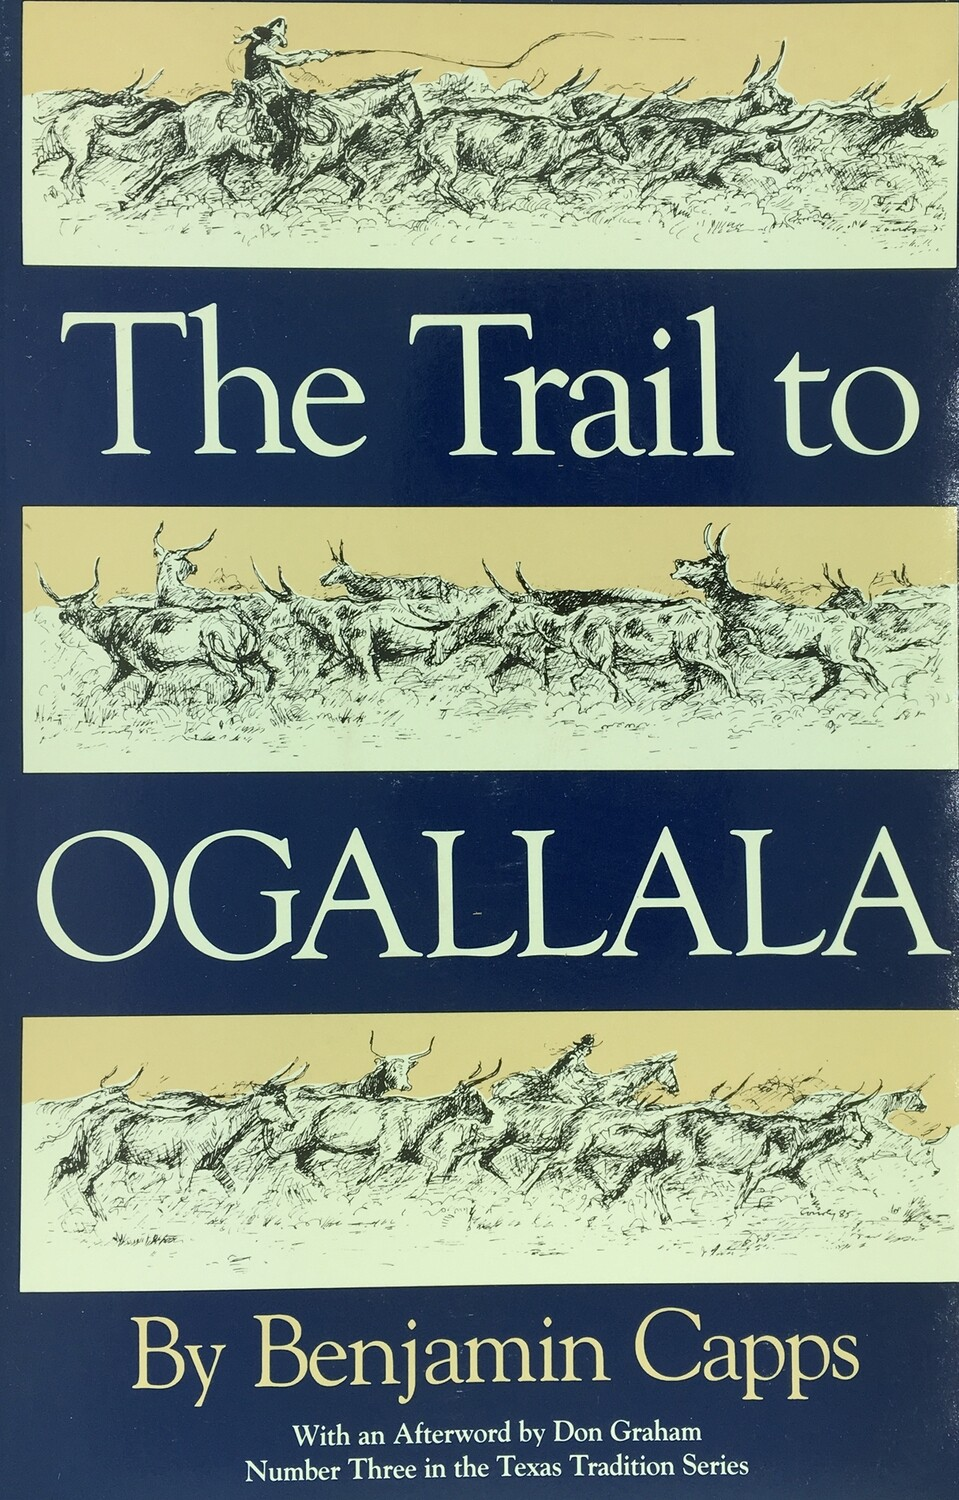 The Trail to Ogallala